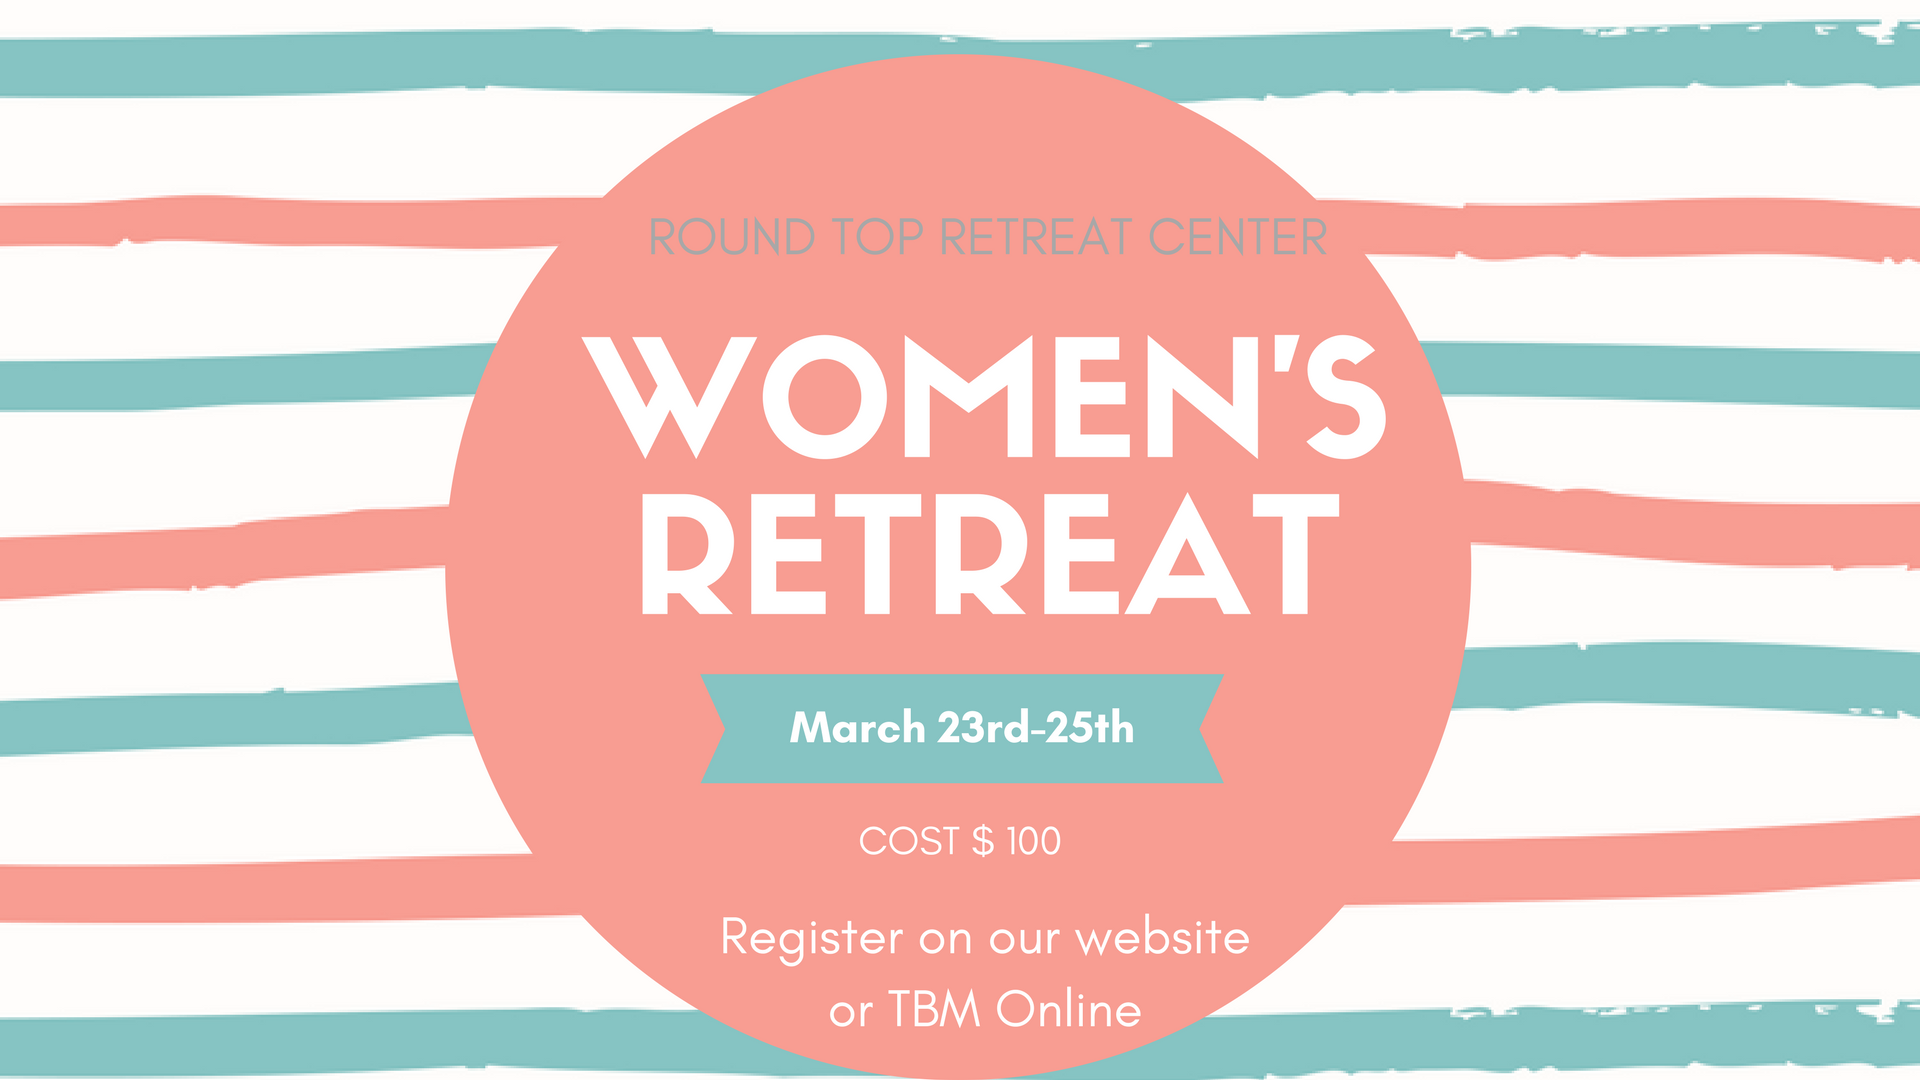 Women's Retreat 2018 logo